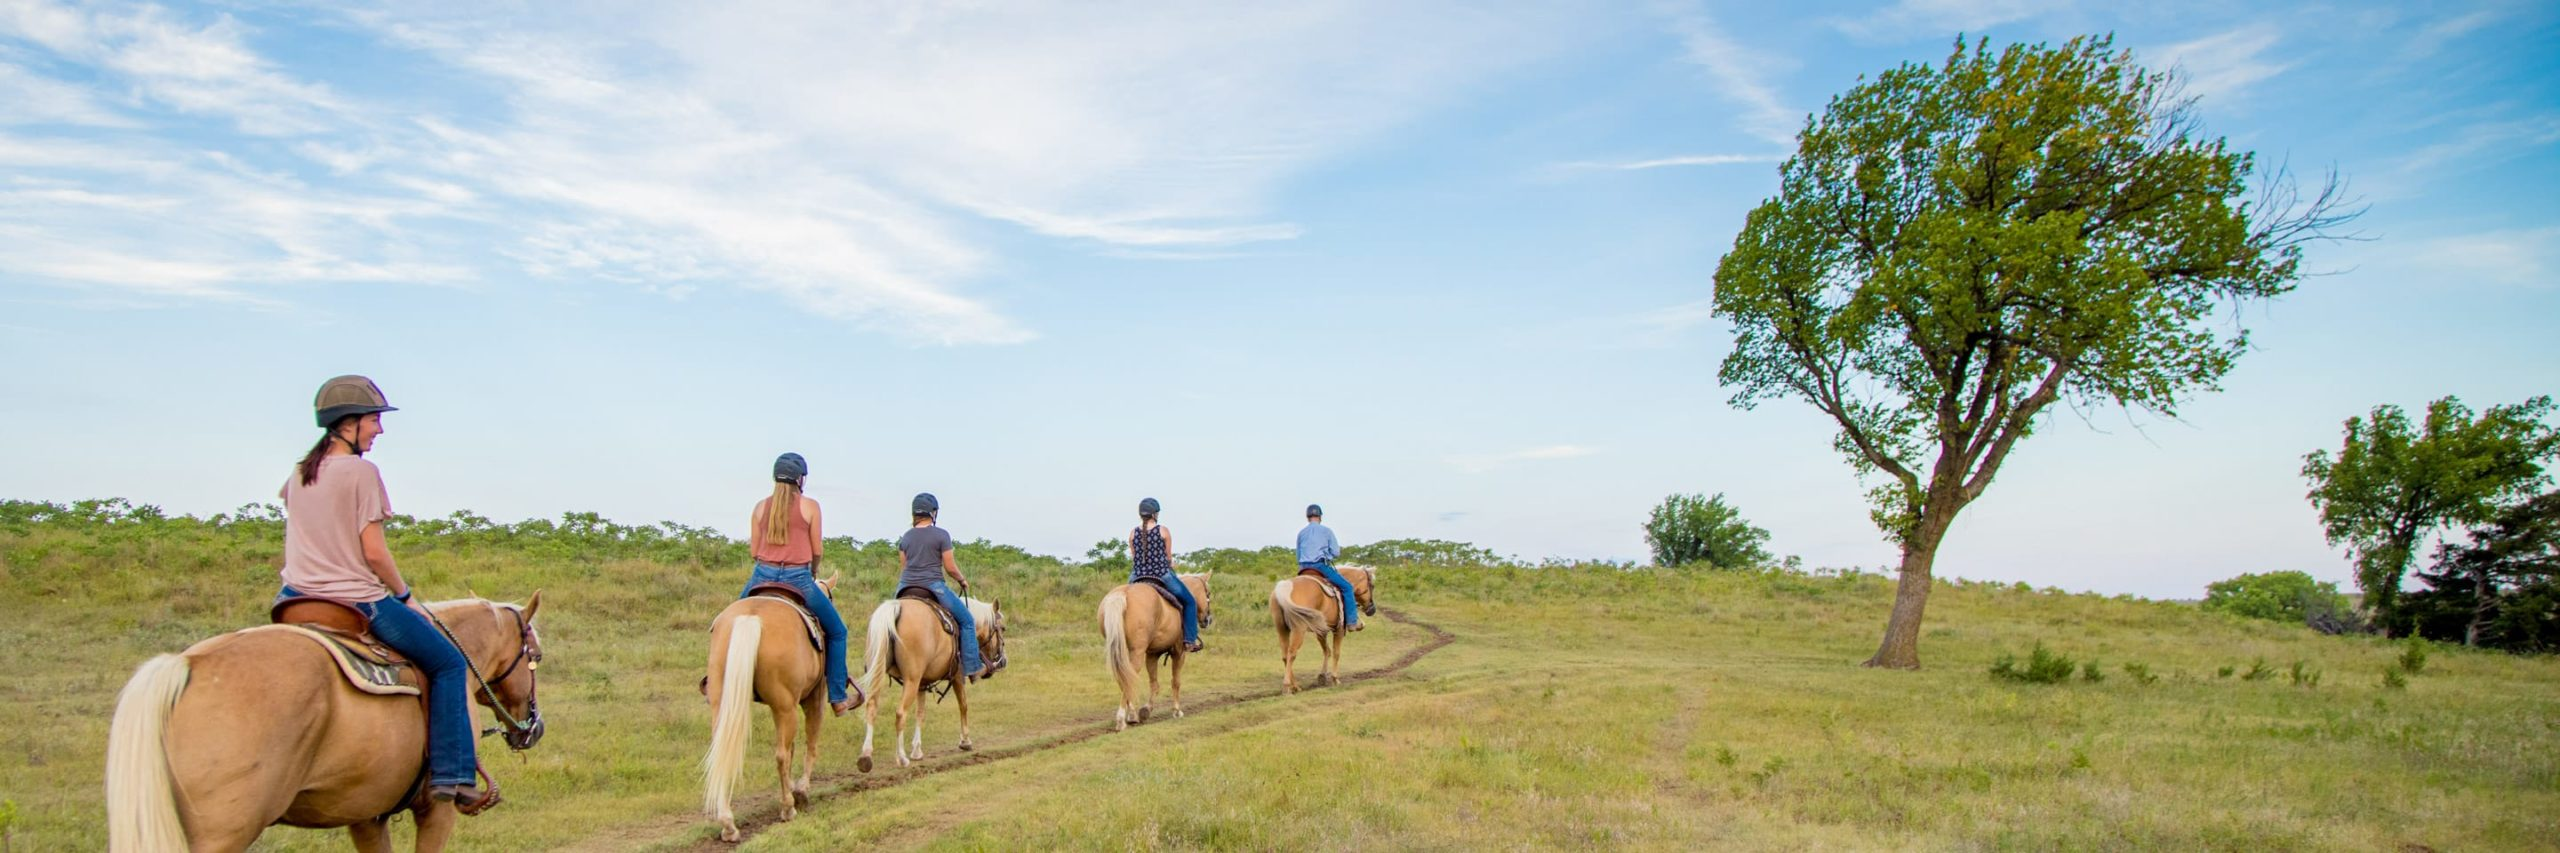 Horseback Riding at Rock Springs Ranch